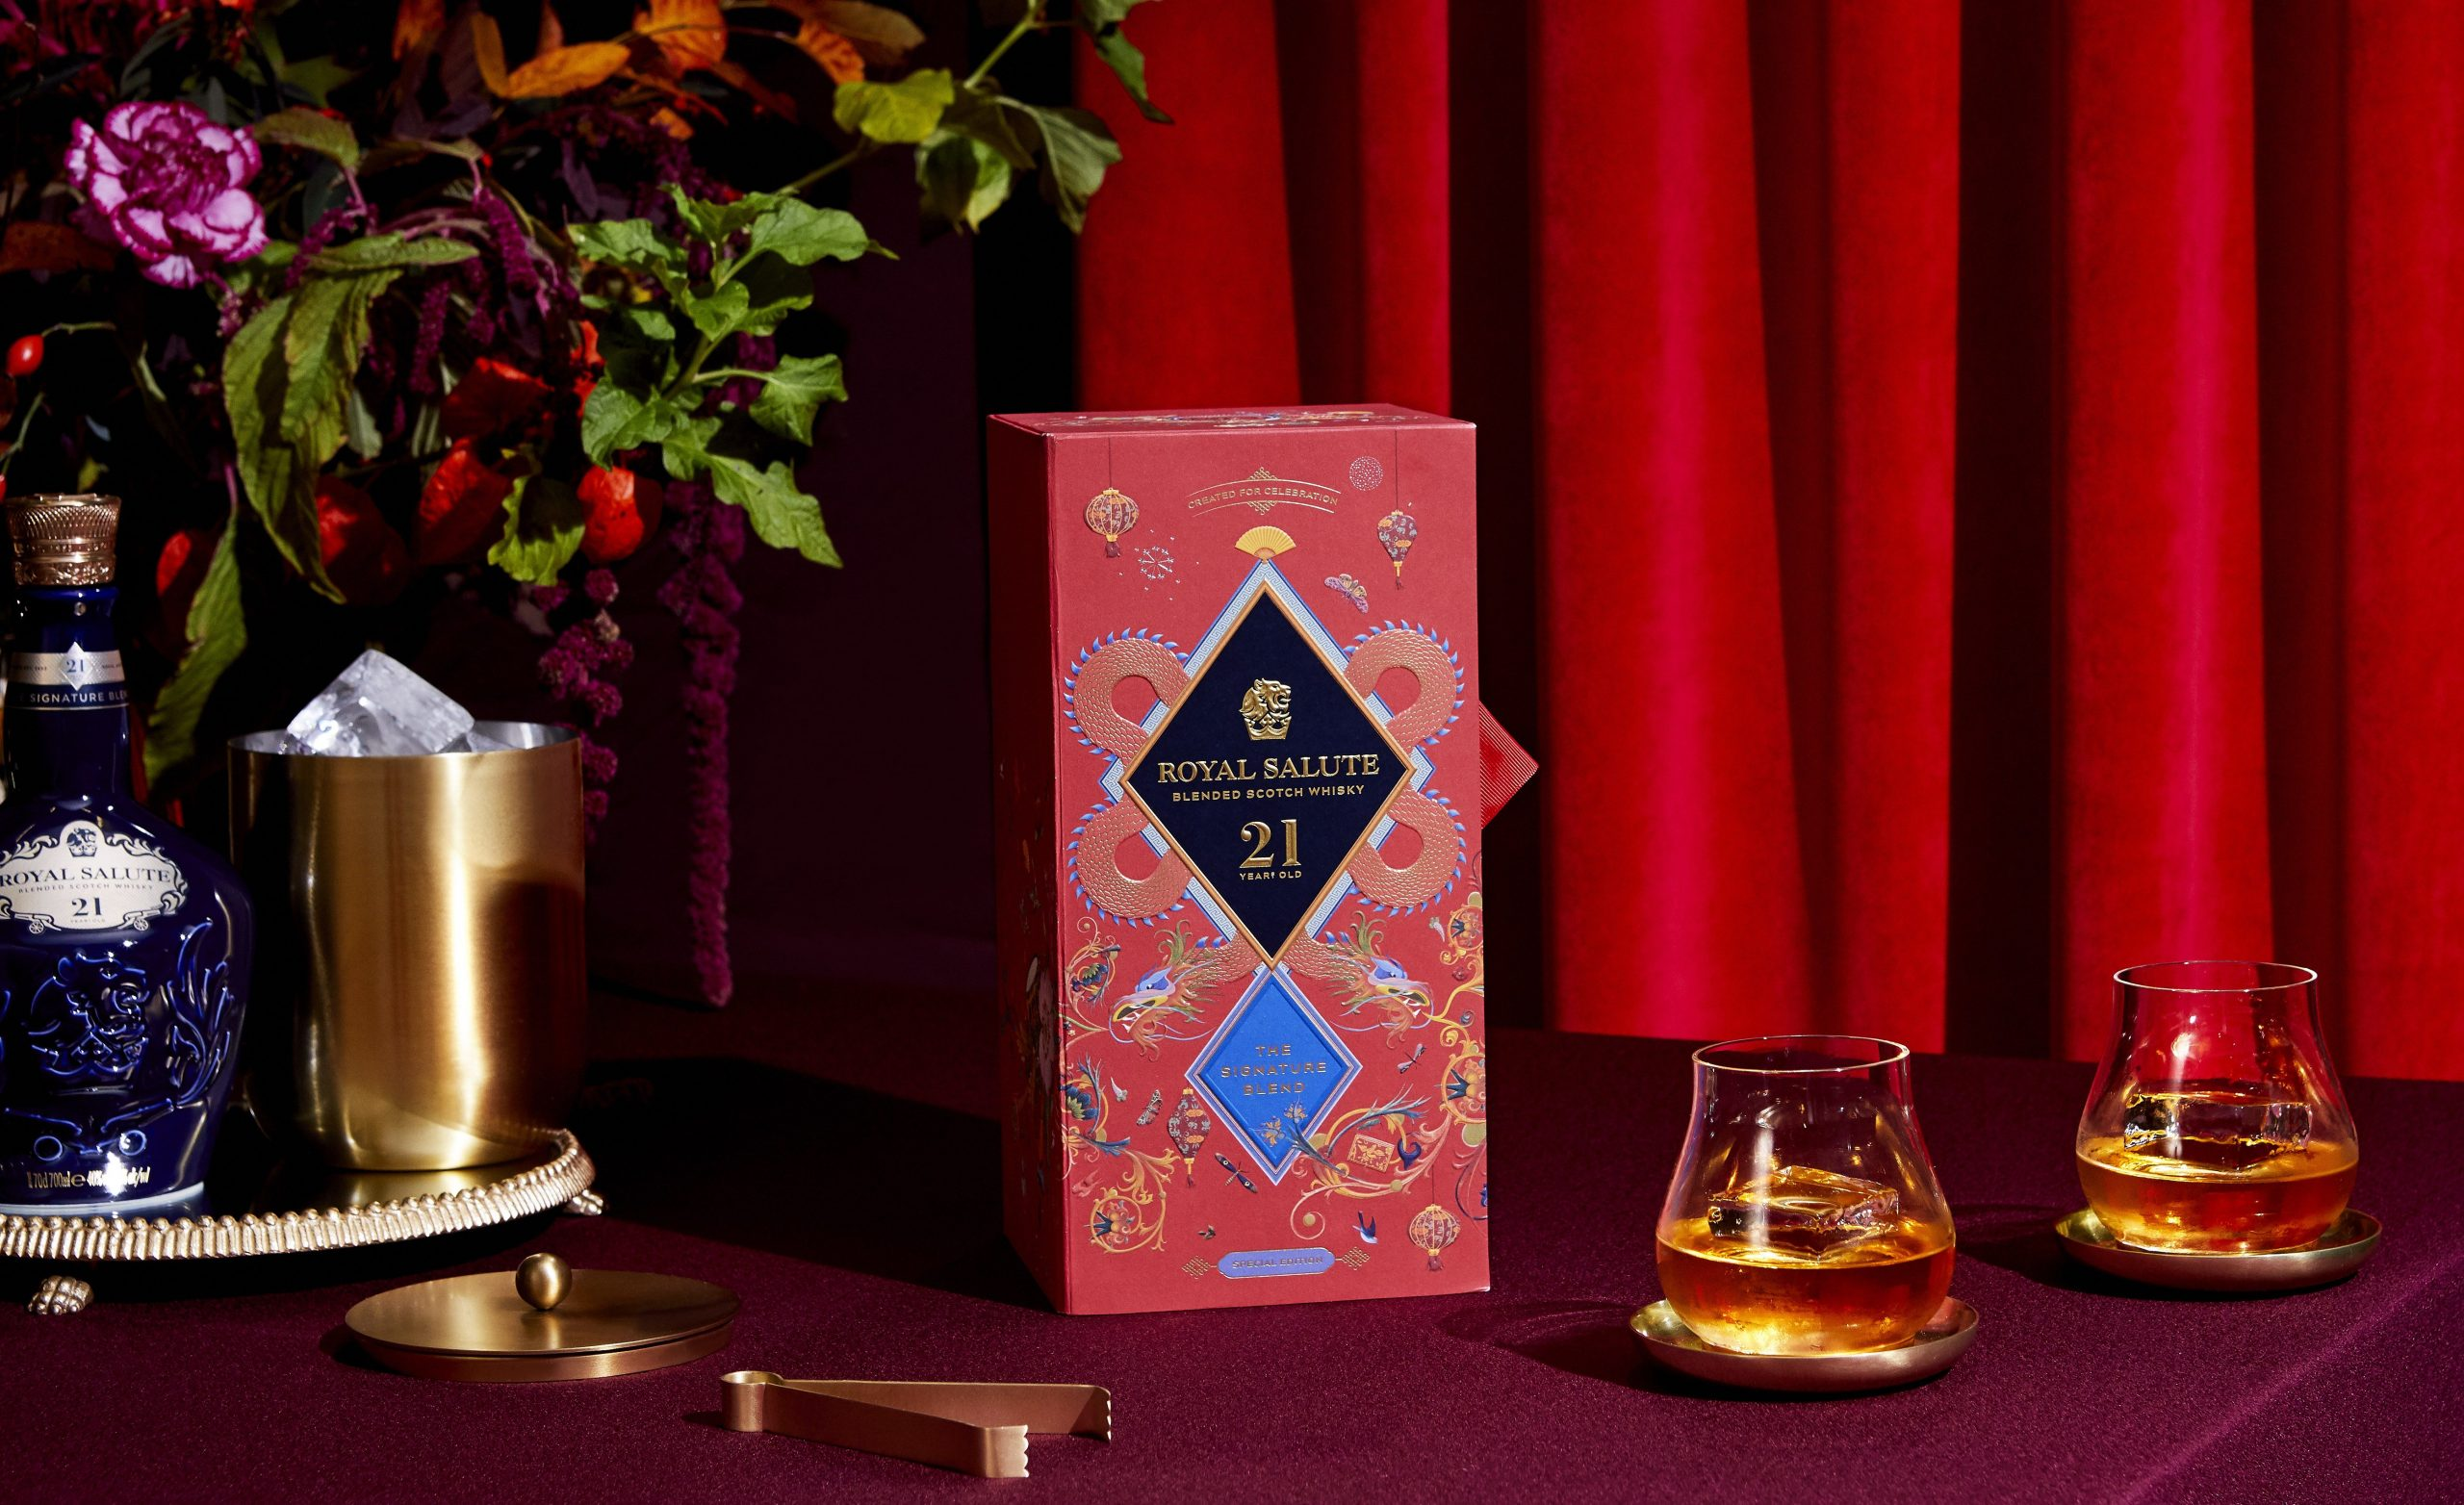 Royal Salute Blended Scotch Whisky Chinese New Year Edition